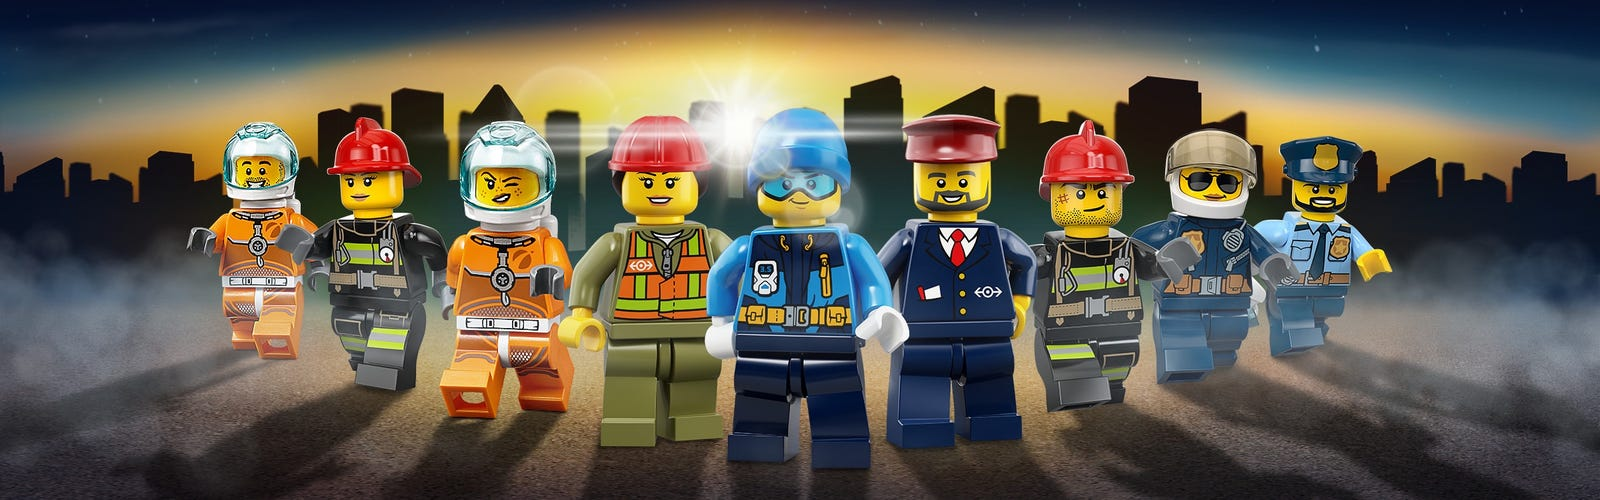 City minifgures posing in the sunset with a silhouette of LEGO® City background